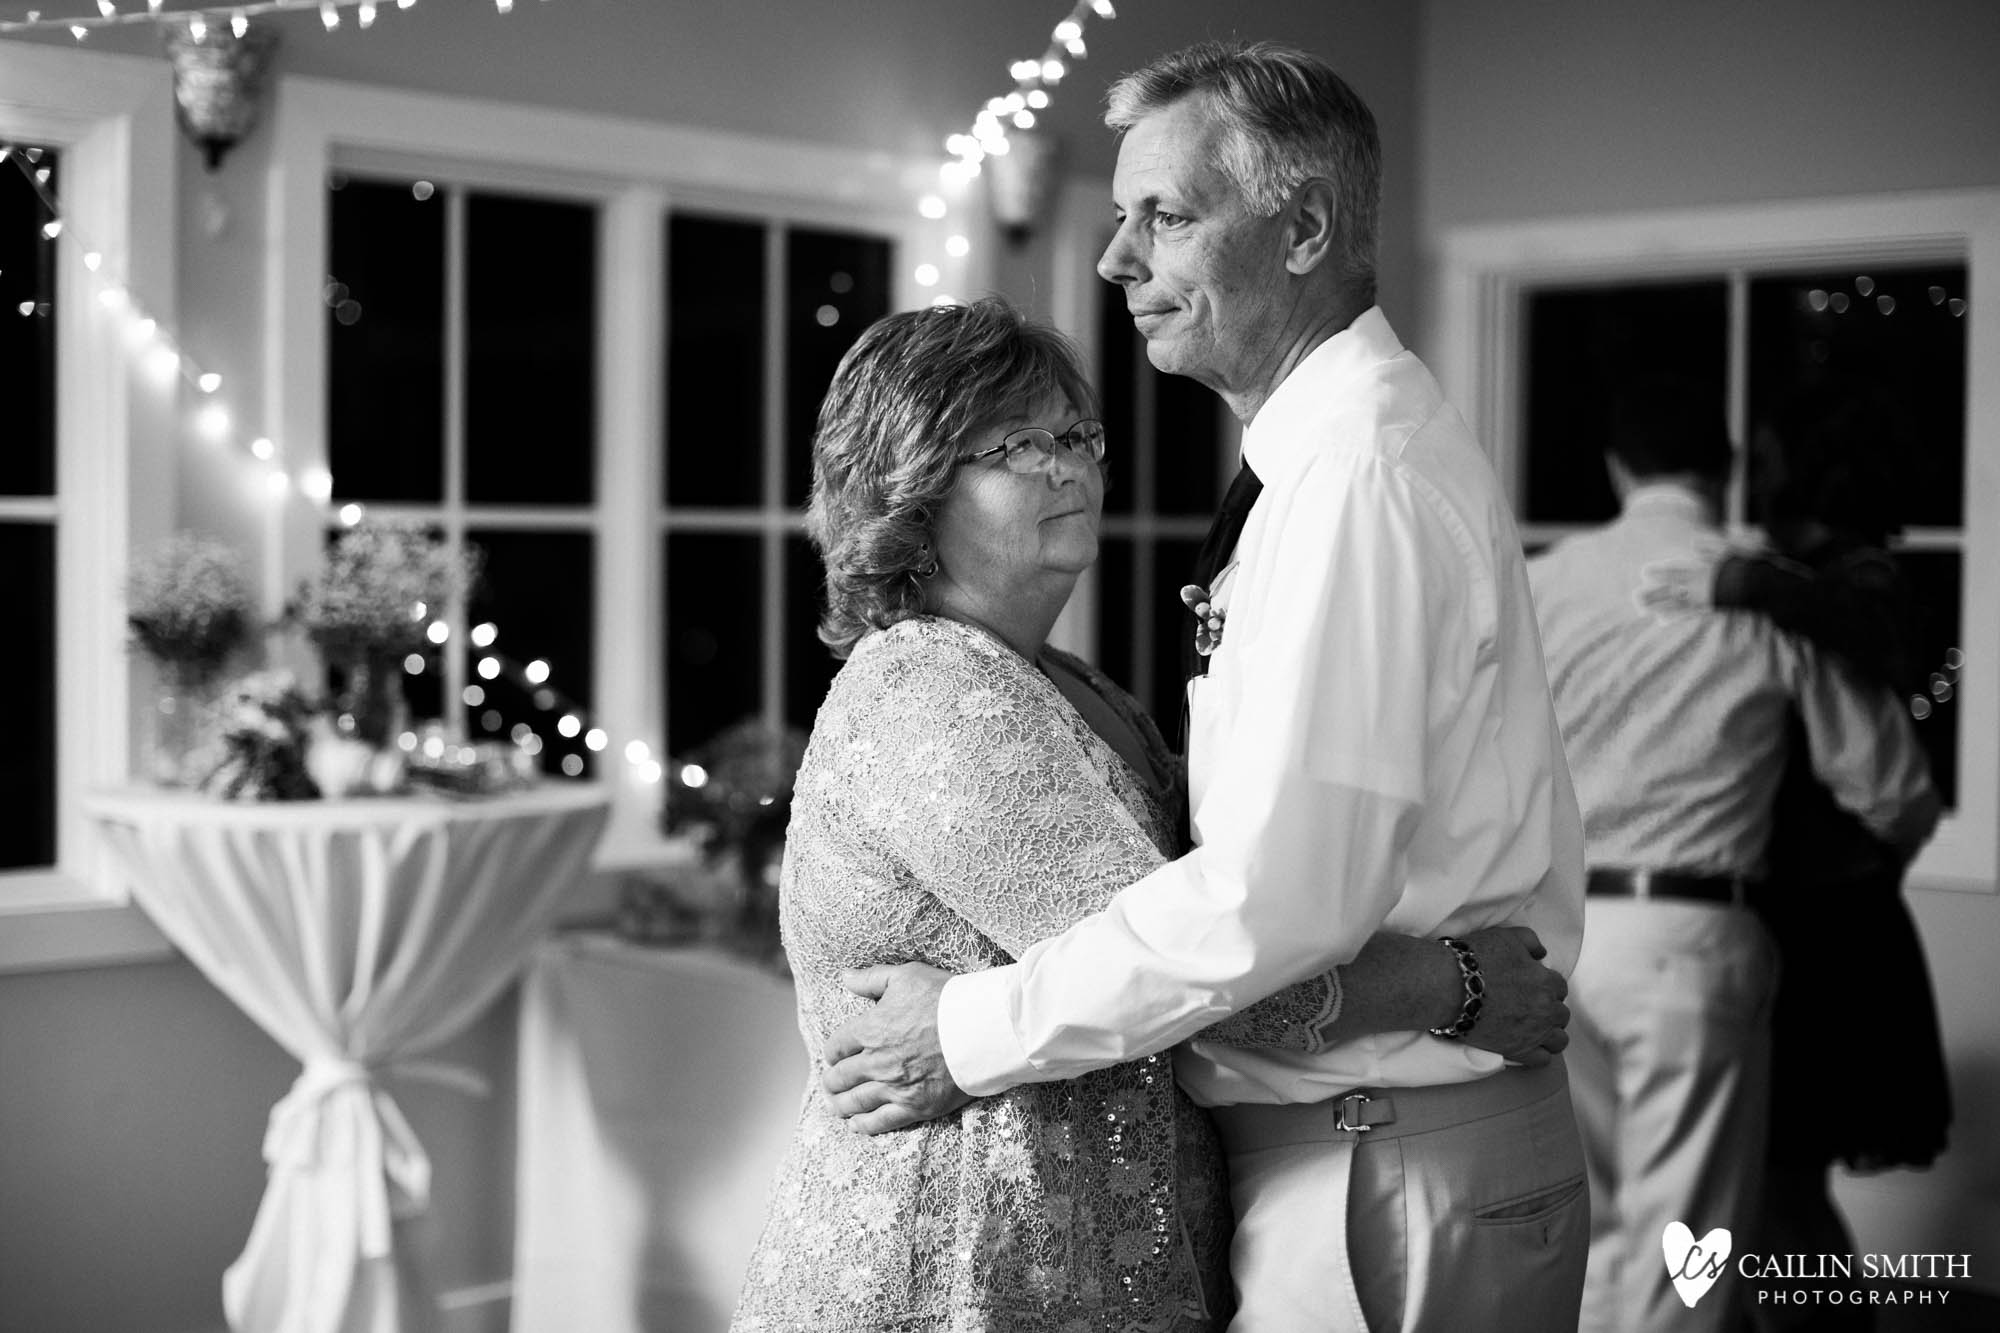 Kimberly_Ross_Amelia_Island_Wedding_Photography_070.jpg